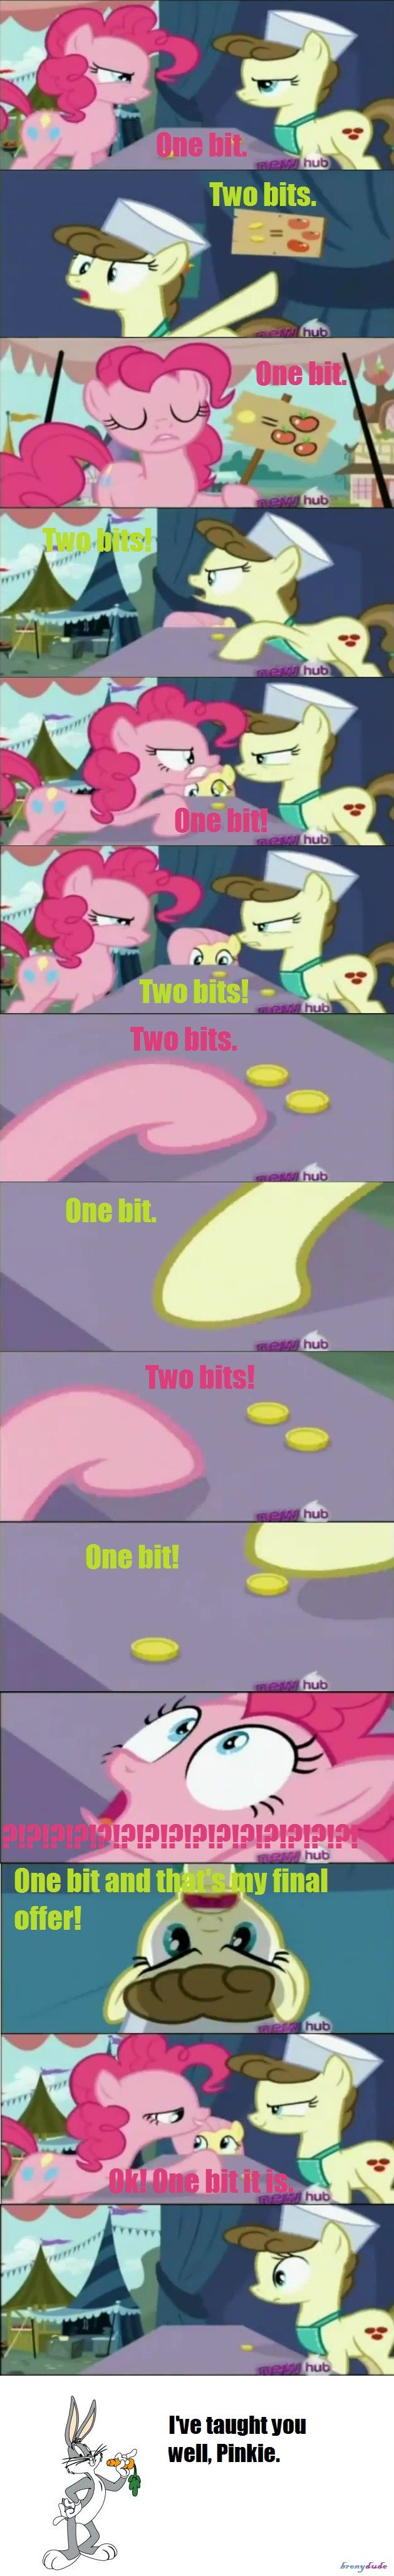 Teach Me Your Trolling Ways Pinkie. Pinkie Pie learned of her ways from the legend of trolling. True Story... < 8 bits!